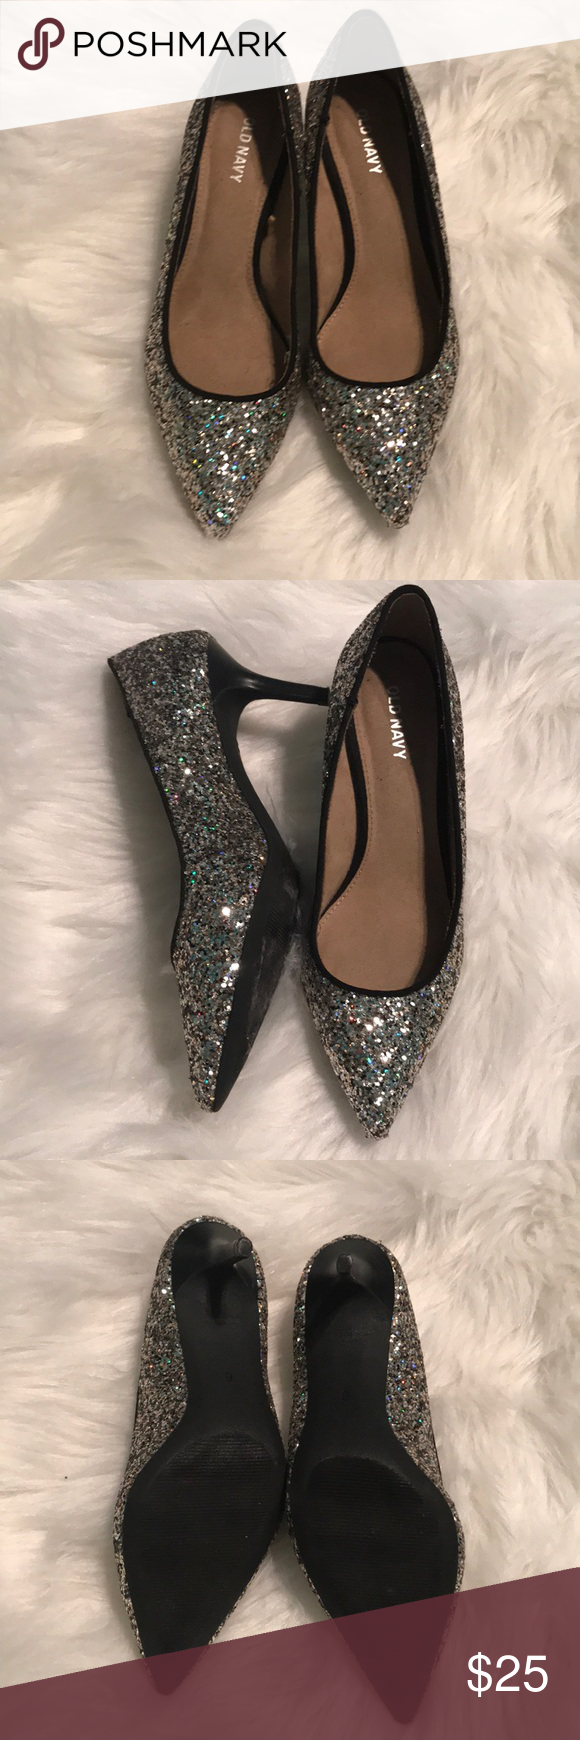 0cf4adb7b7bf New Old Navy Glitter Sparkle Pump Heels New with Tags Old Navy Glitter  heeled Shoes.